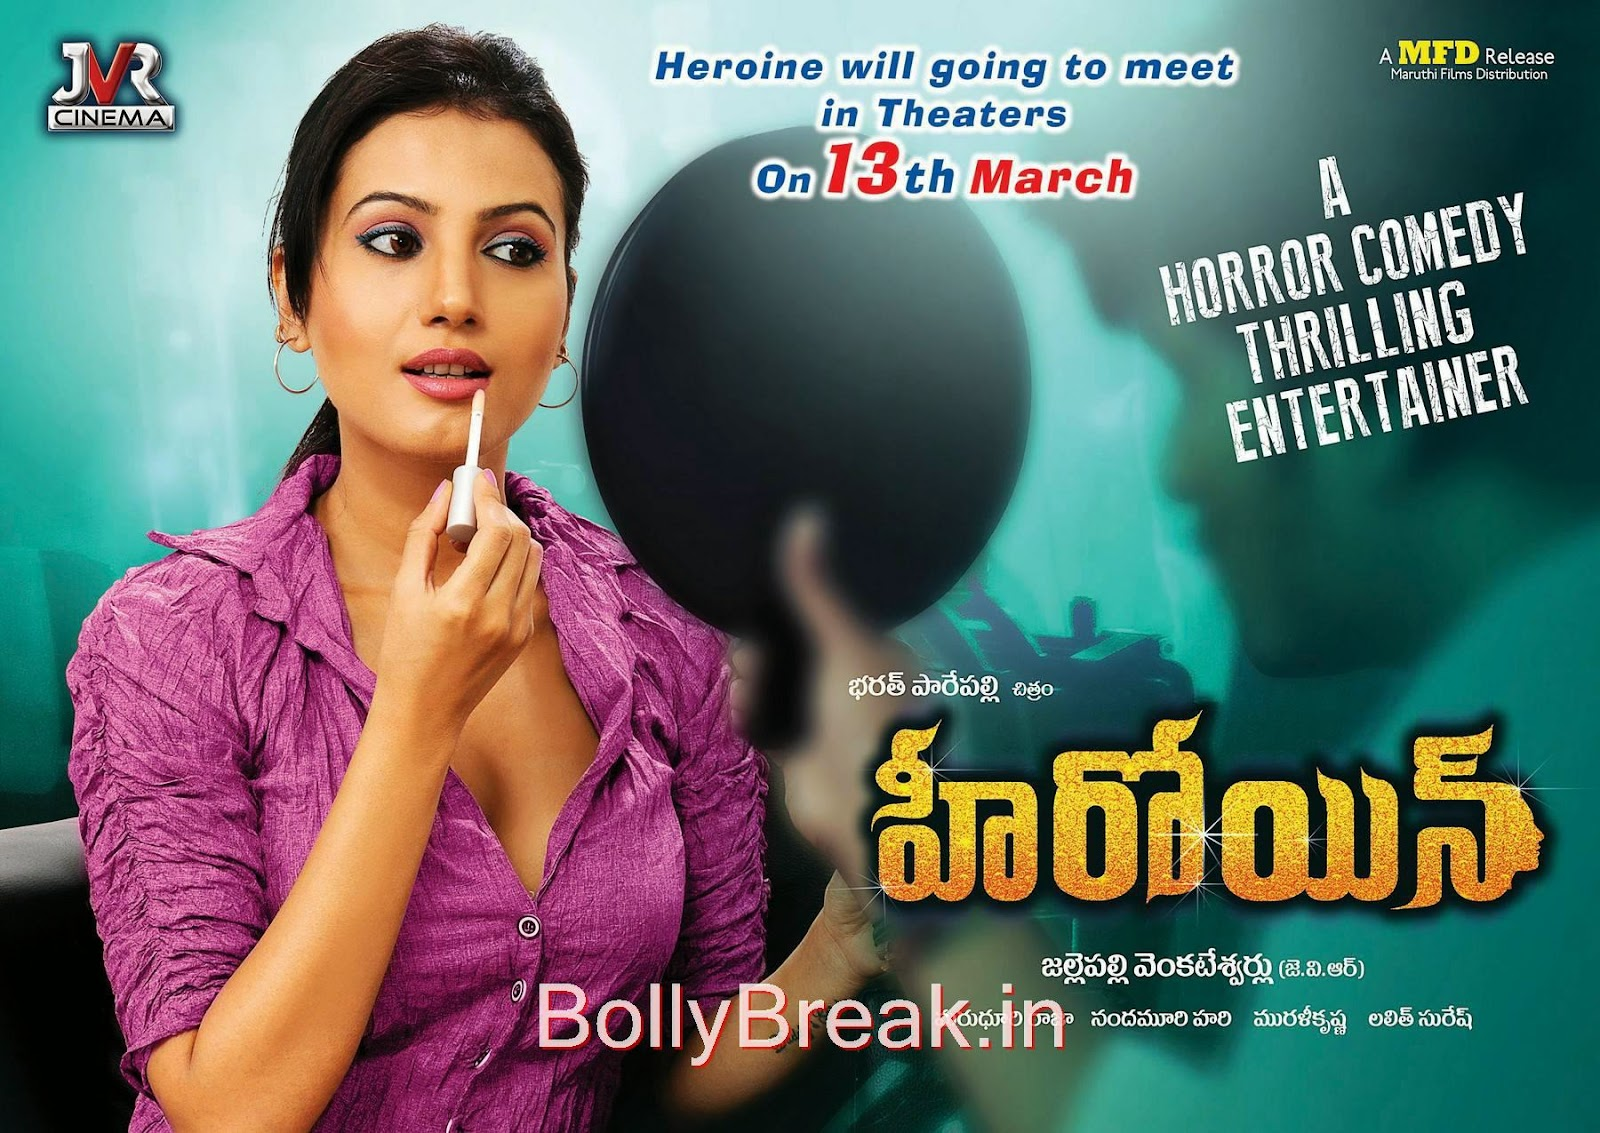 Anusmriti Hot HD Images from Heroine Movie Wallpapers - 8 Pics